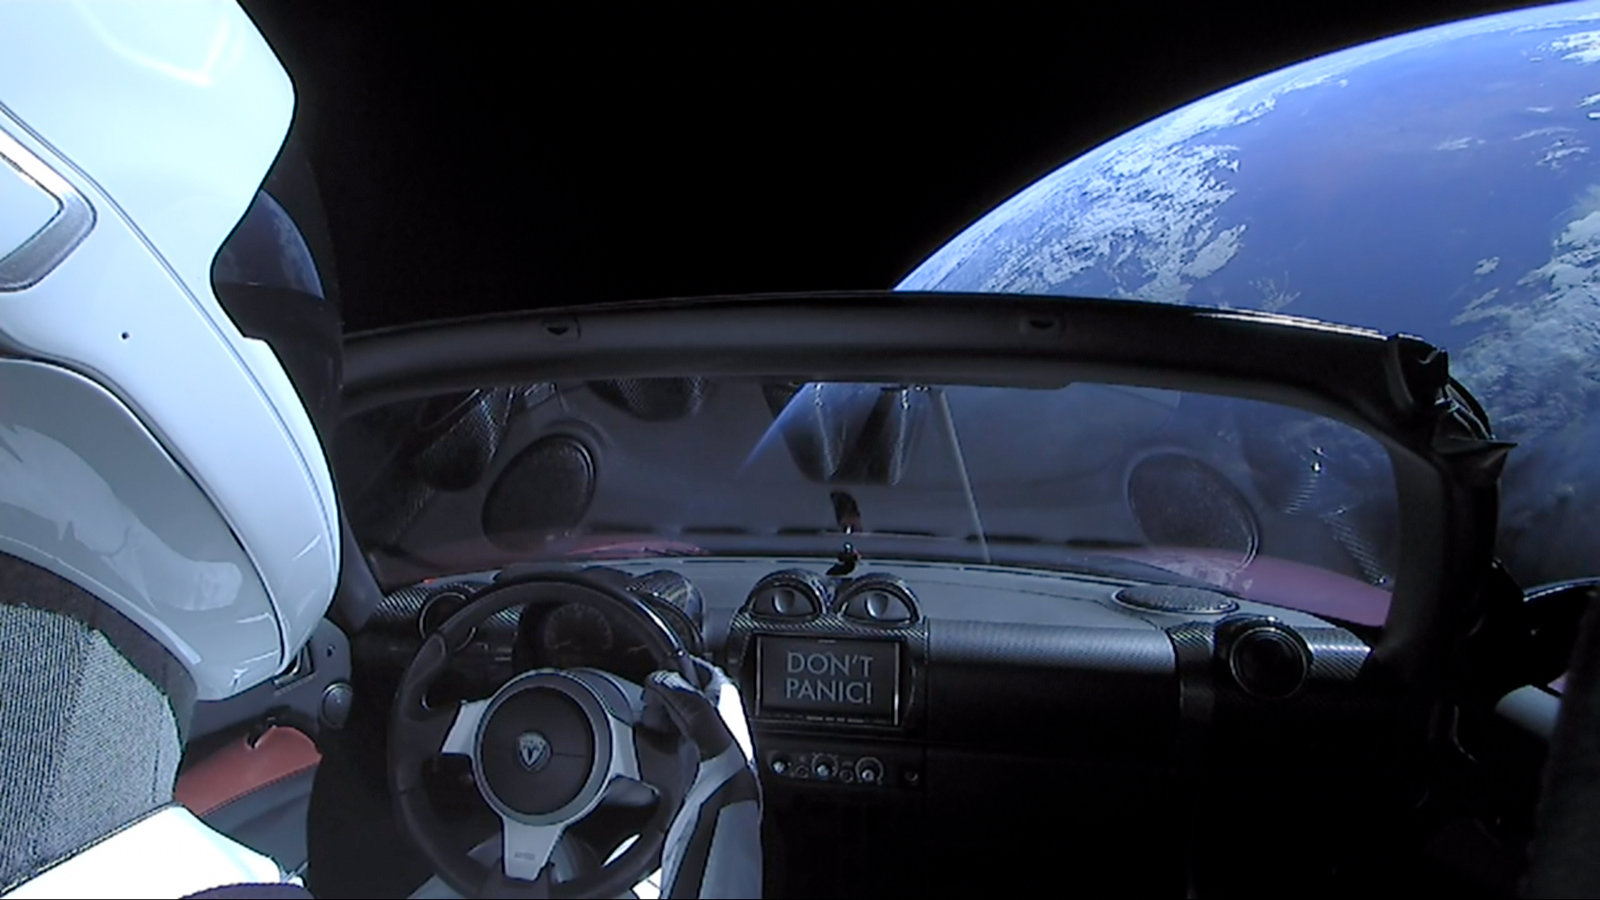 Tesla Roadster SpaceX, Falcon Heavy, misja